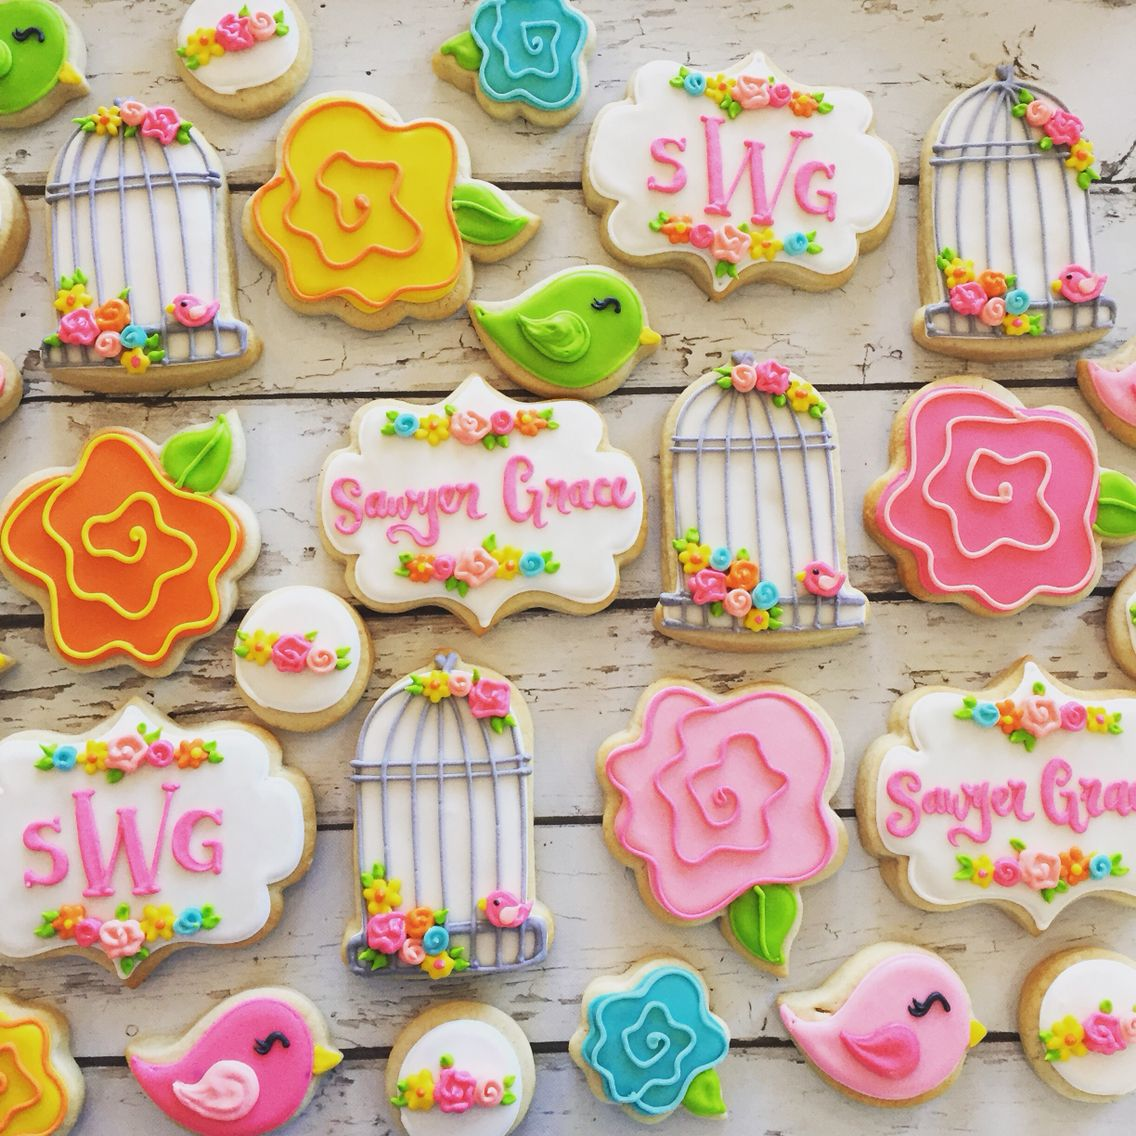 Birds And Floral Baby Shower Cookies By Hayleycakes And Cookies In